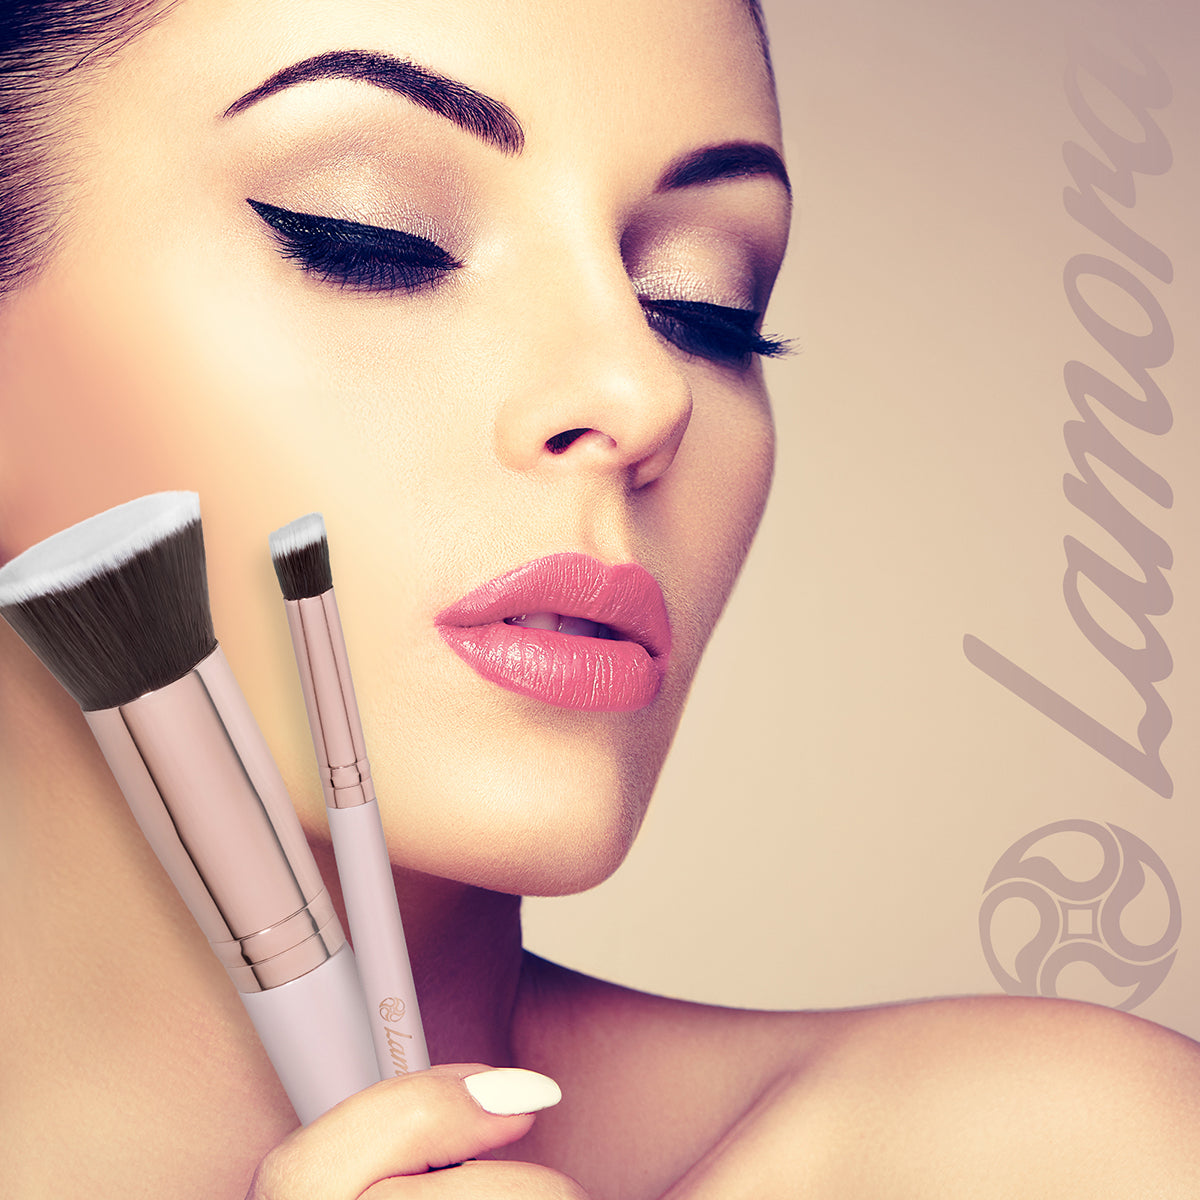 Beautiful woman holding brushes used to apply foundation